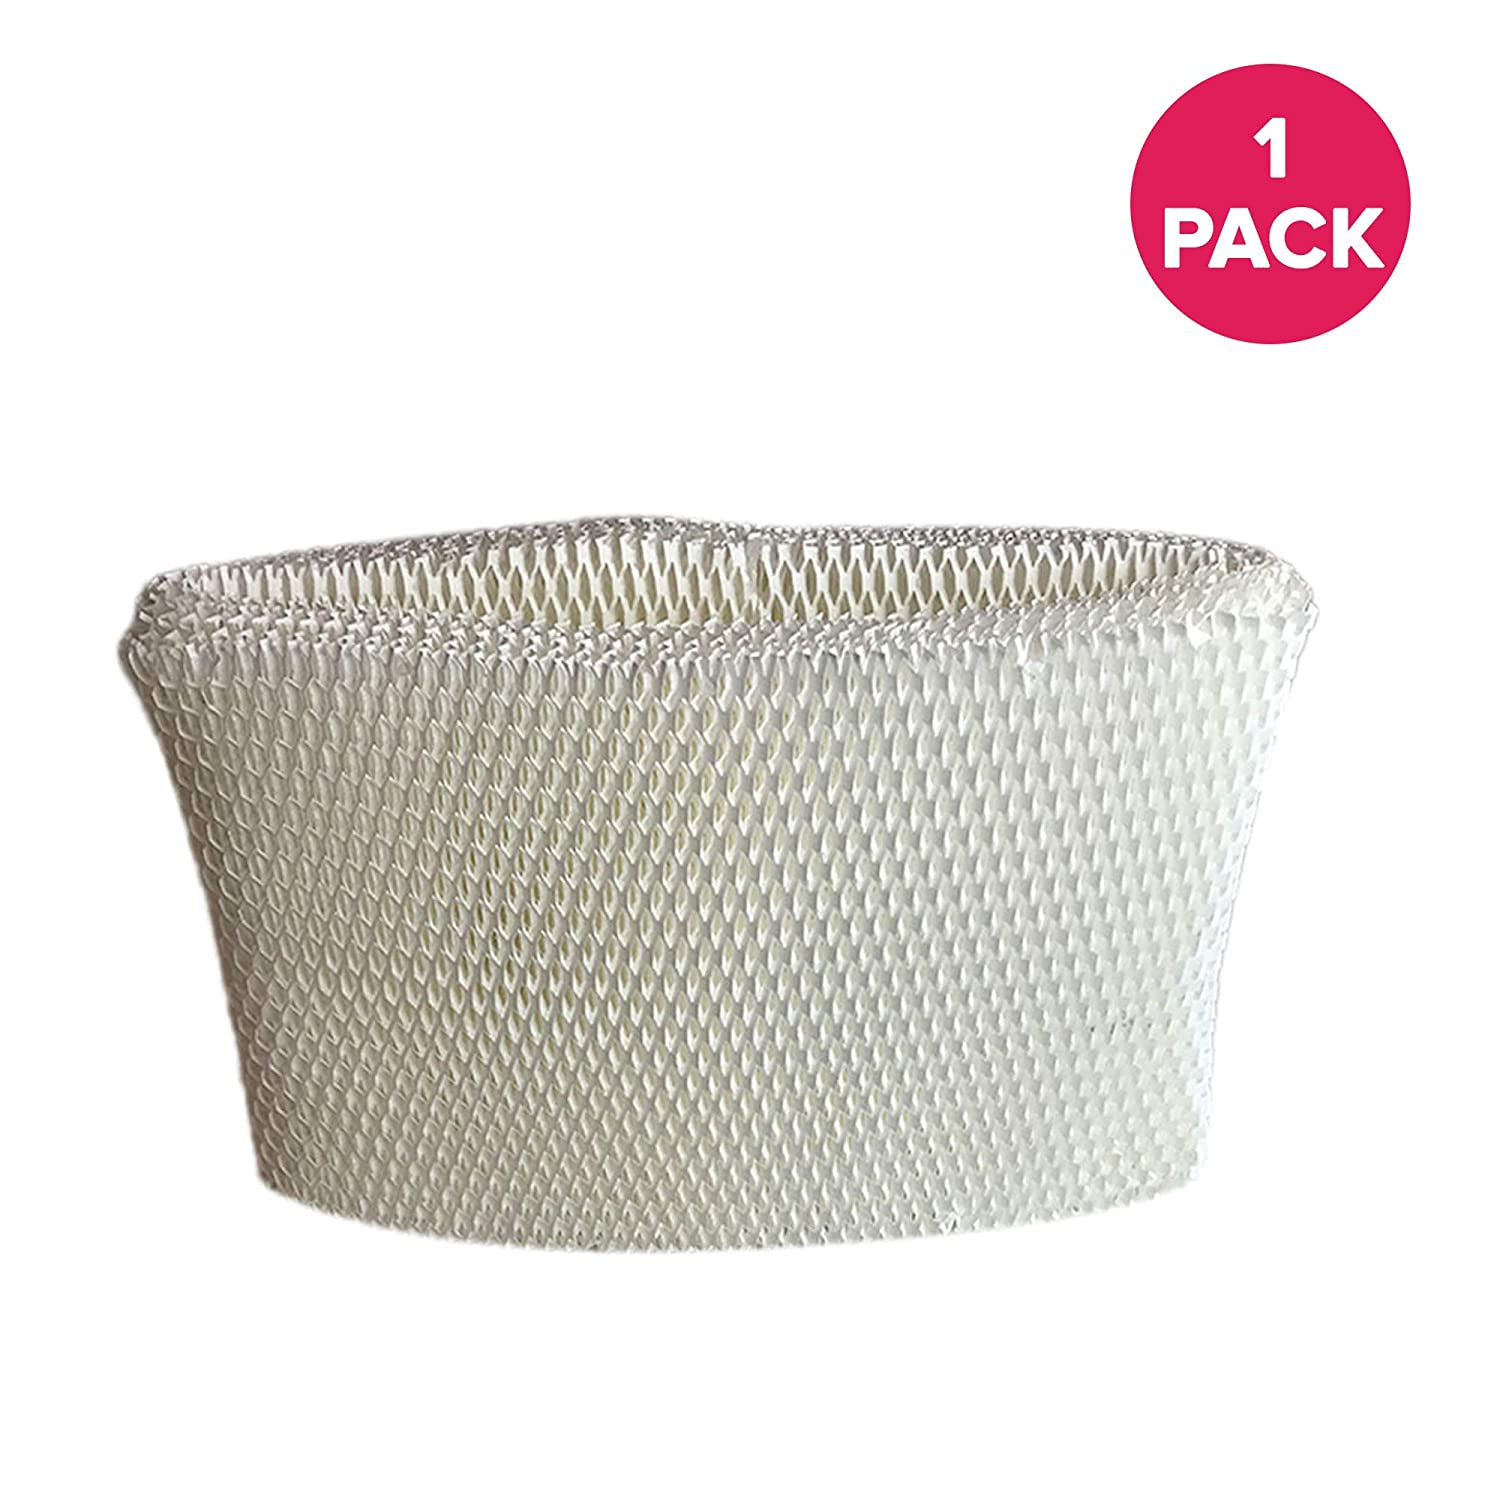 Think Crucial Replacement for Honeywell HC14N Humidifier Filter Fits QuietCare HCM-6009, HCM-6011i, HCM-6011WW, HCM-6012i & HCM-6013, Compatible With Part # HC-14N